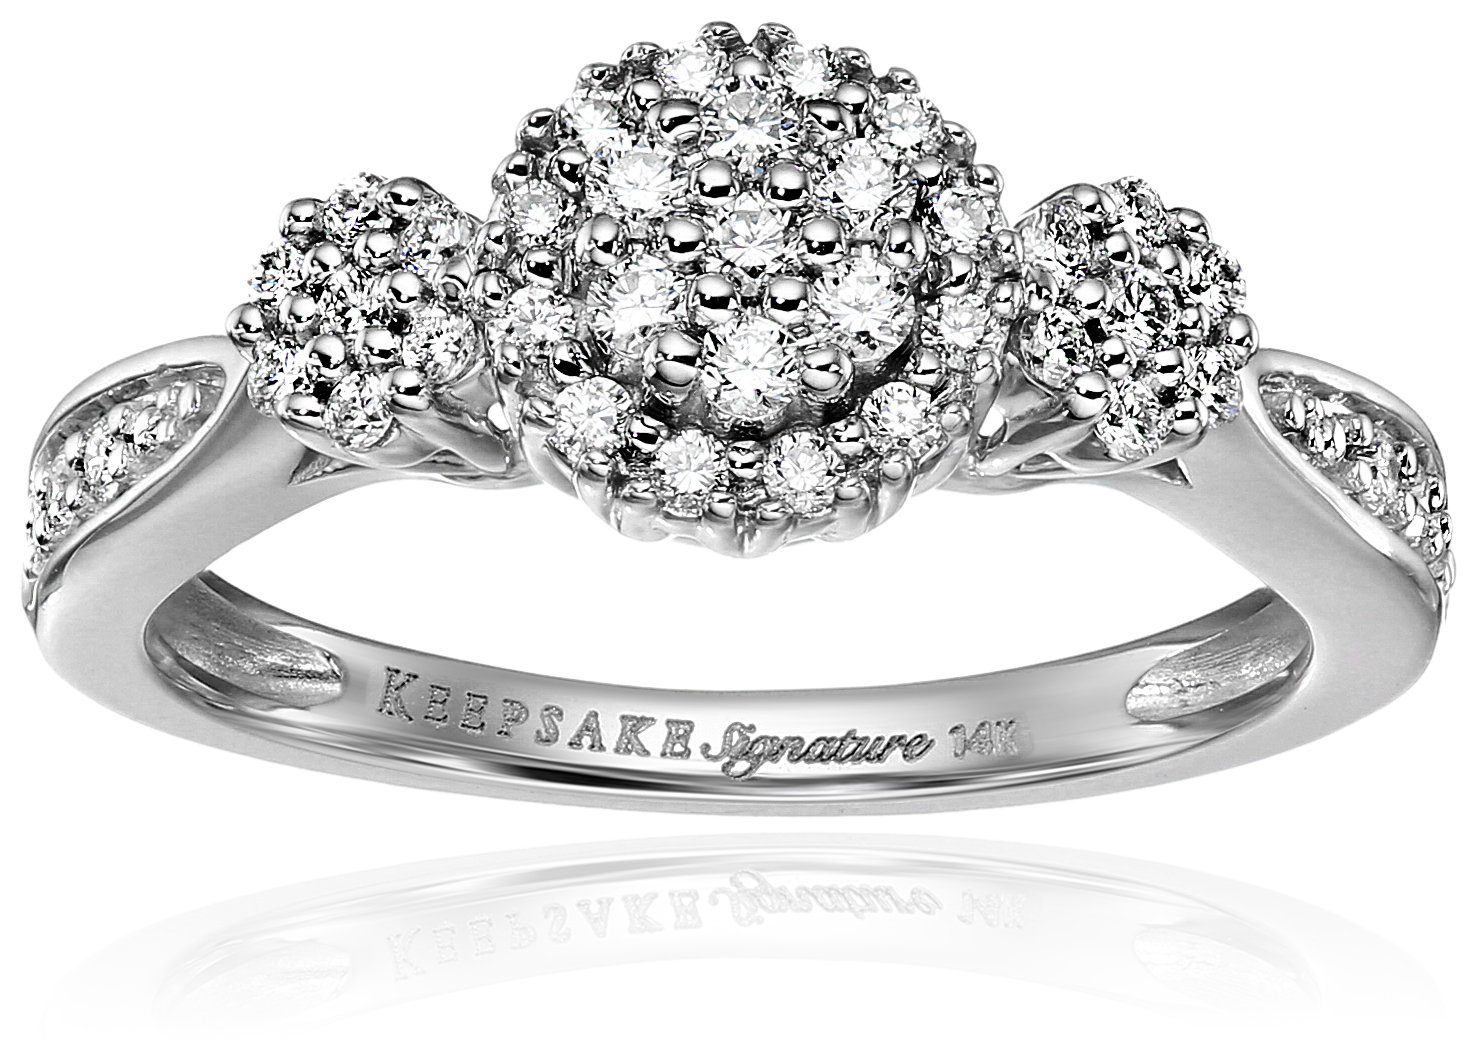 Keepsake Signature 14k White Gold Diamond Contemporary Engagement Ring (1/3cttw, H-I Color, I1 Clarity), Size 7